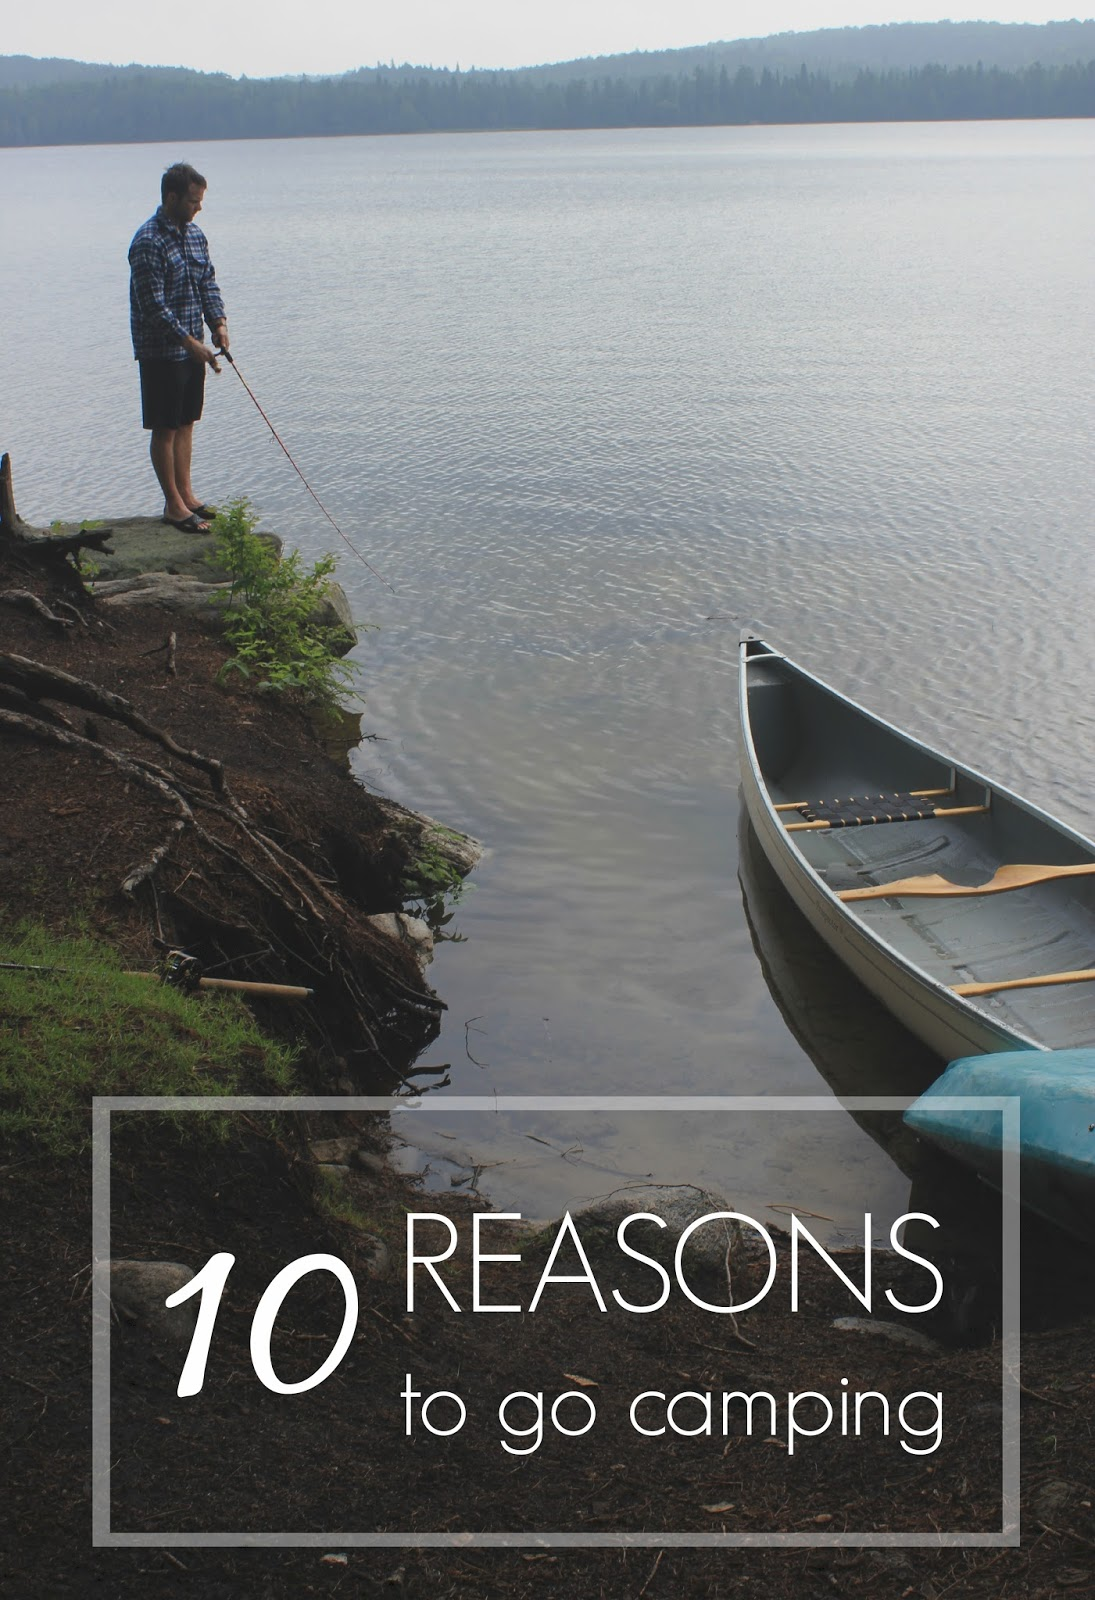 10 reasons to go camping